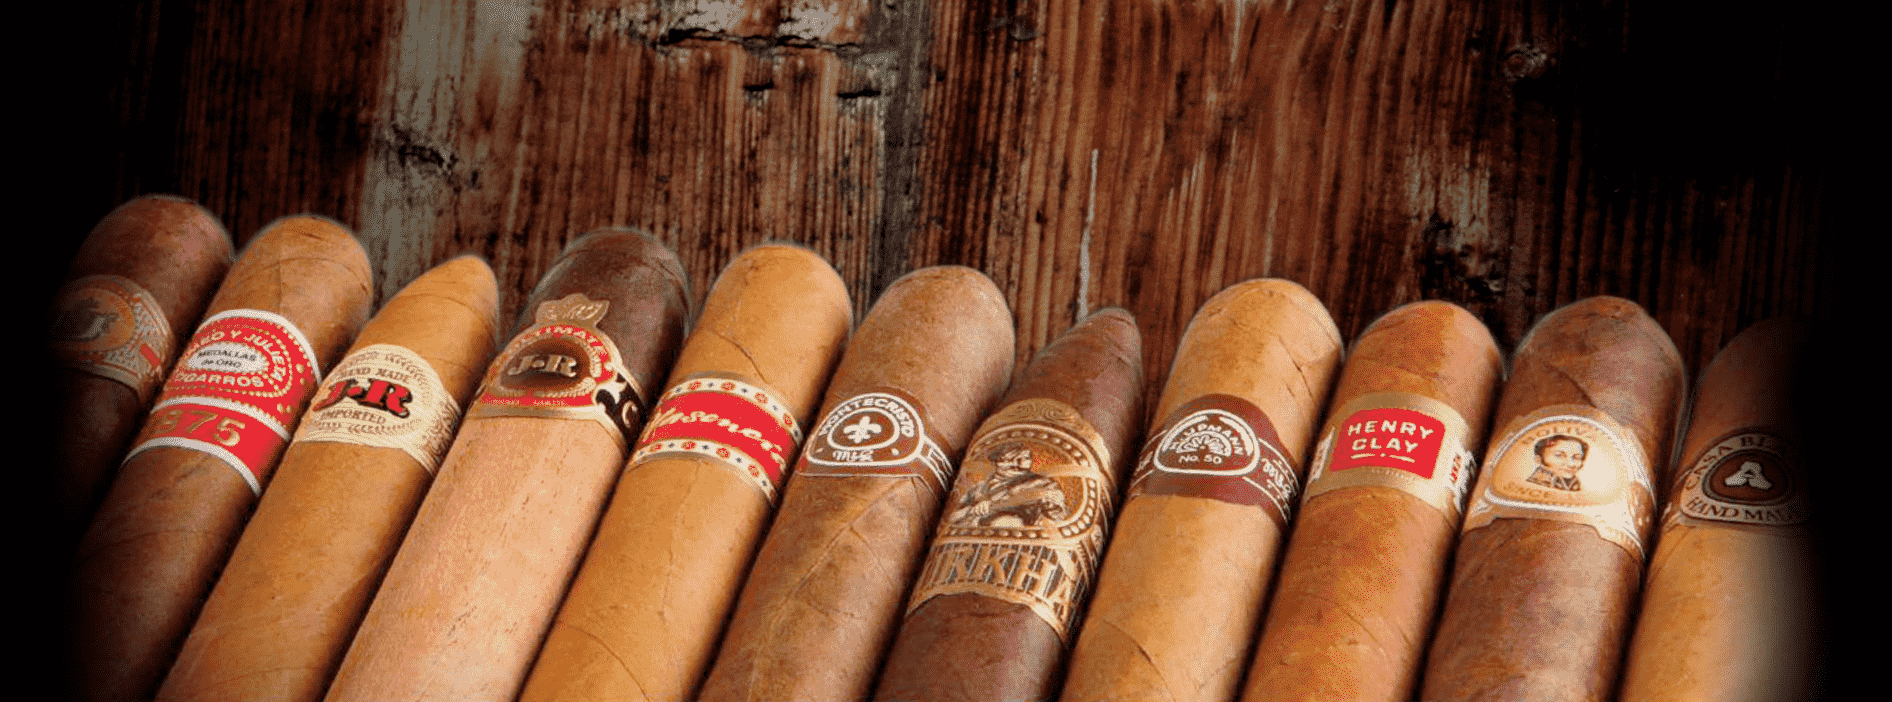 Homepage | JR Cigar Outlet, Burlington